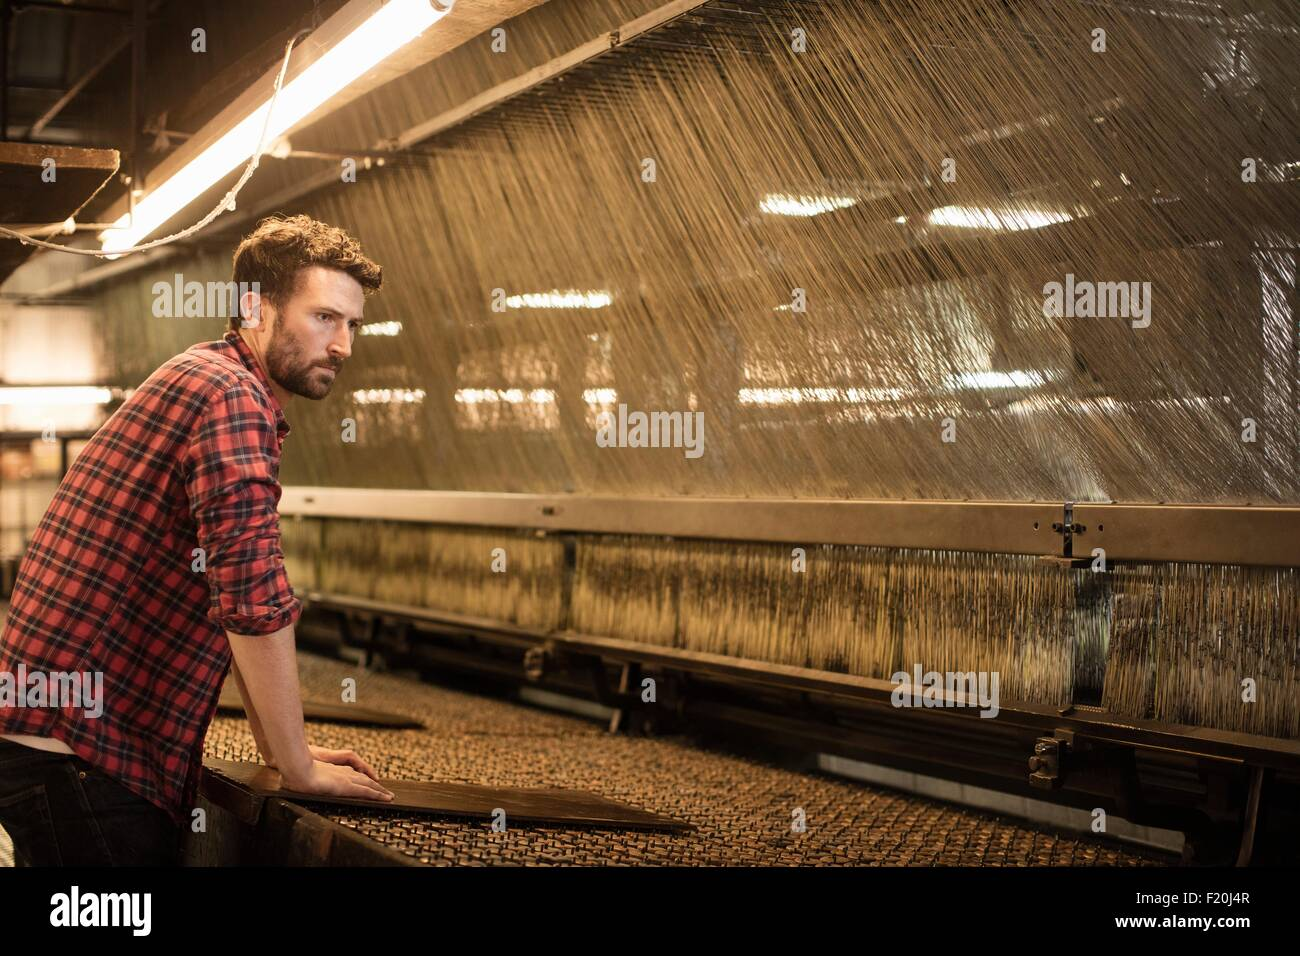 Male lace weaver using old weaving machine in textile mill - Stock Image